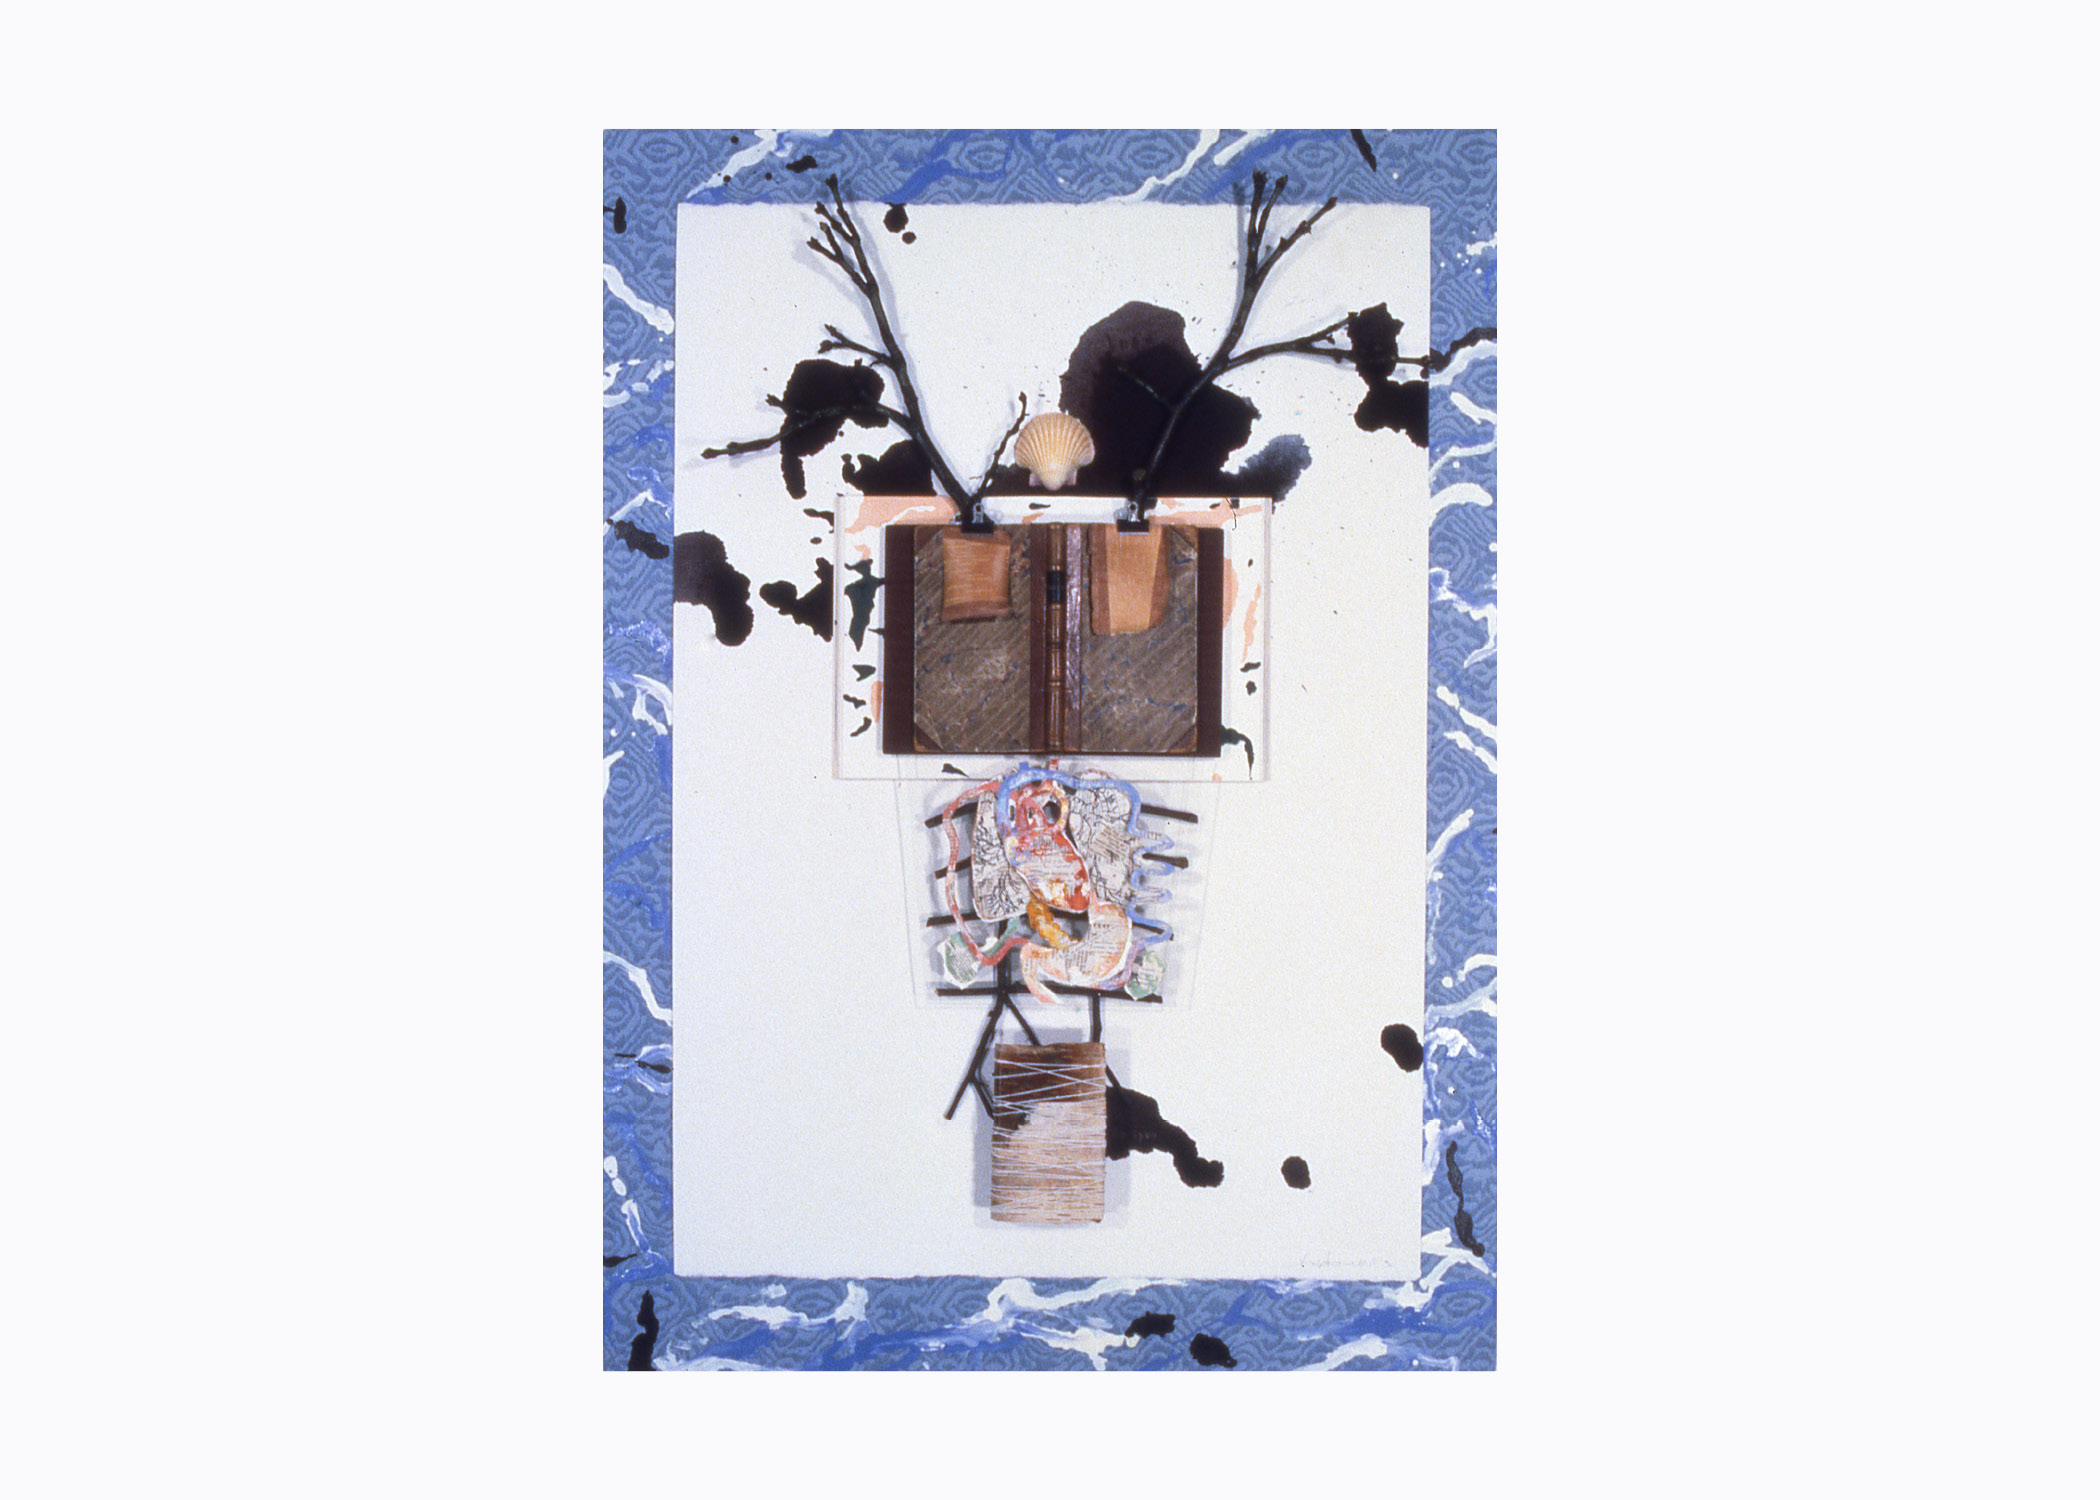 Keith Mitchell,  Summa , 1992, mixed media,oil paint, wood panel, ink, wood, tree branches,silk, shells, W 35 x L 48 x W 3 inches.Private collection.